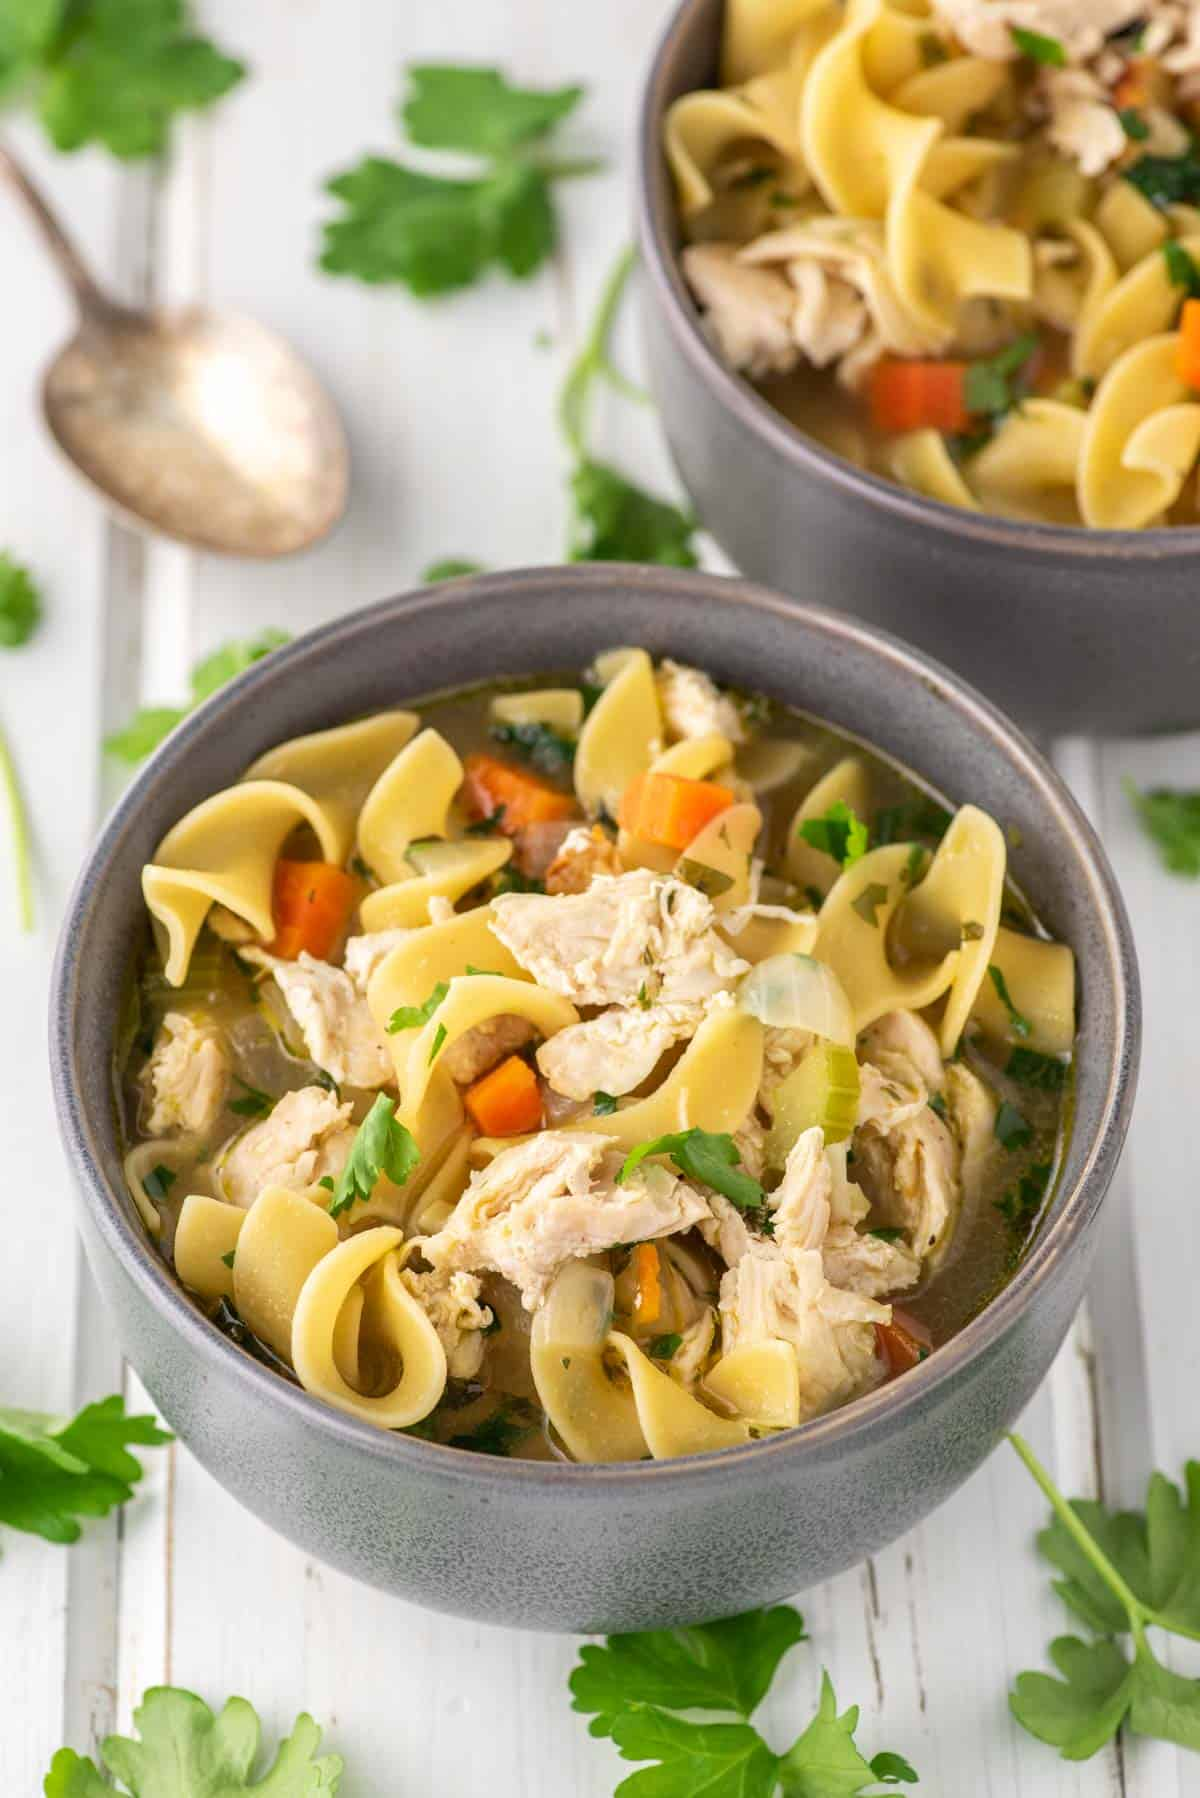 two bowls of soup with chicken and noodles